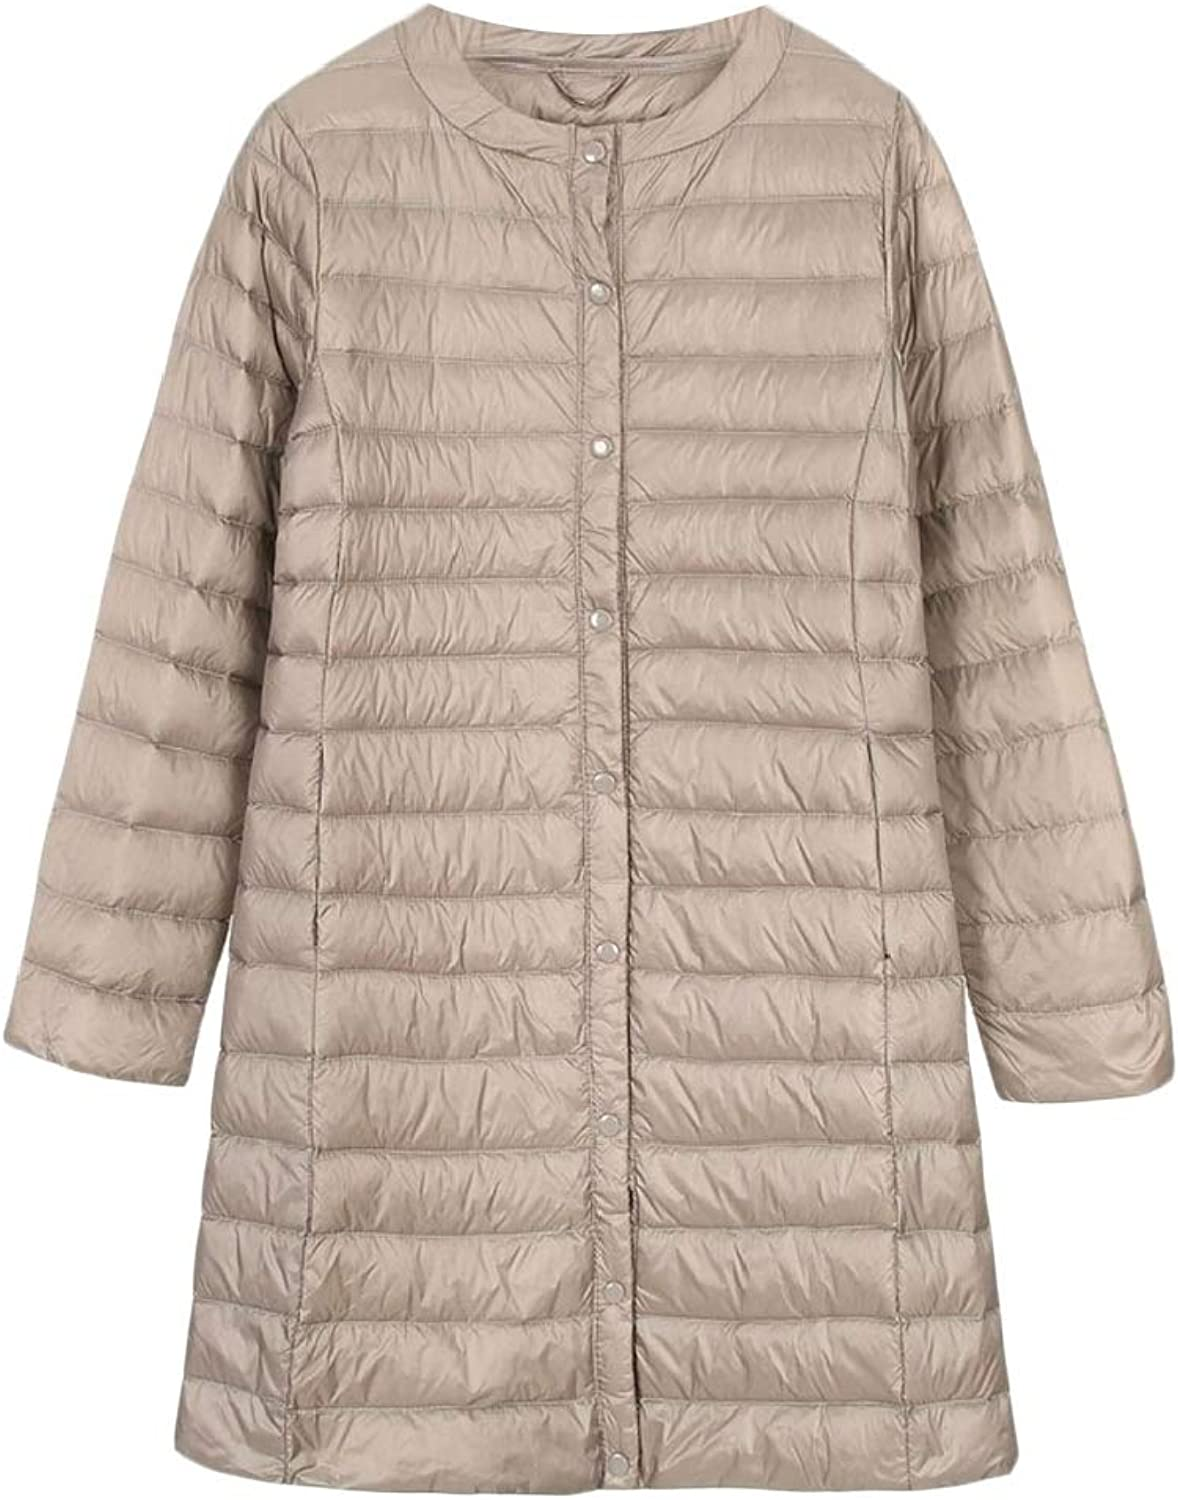 Desolateness Womens Light Weight Long Puffer Coat Down Parka Jacket